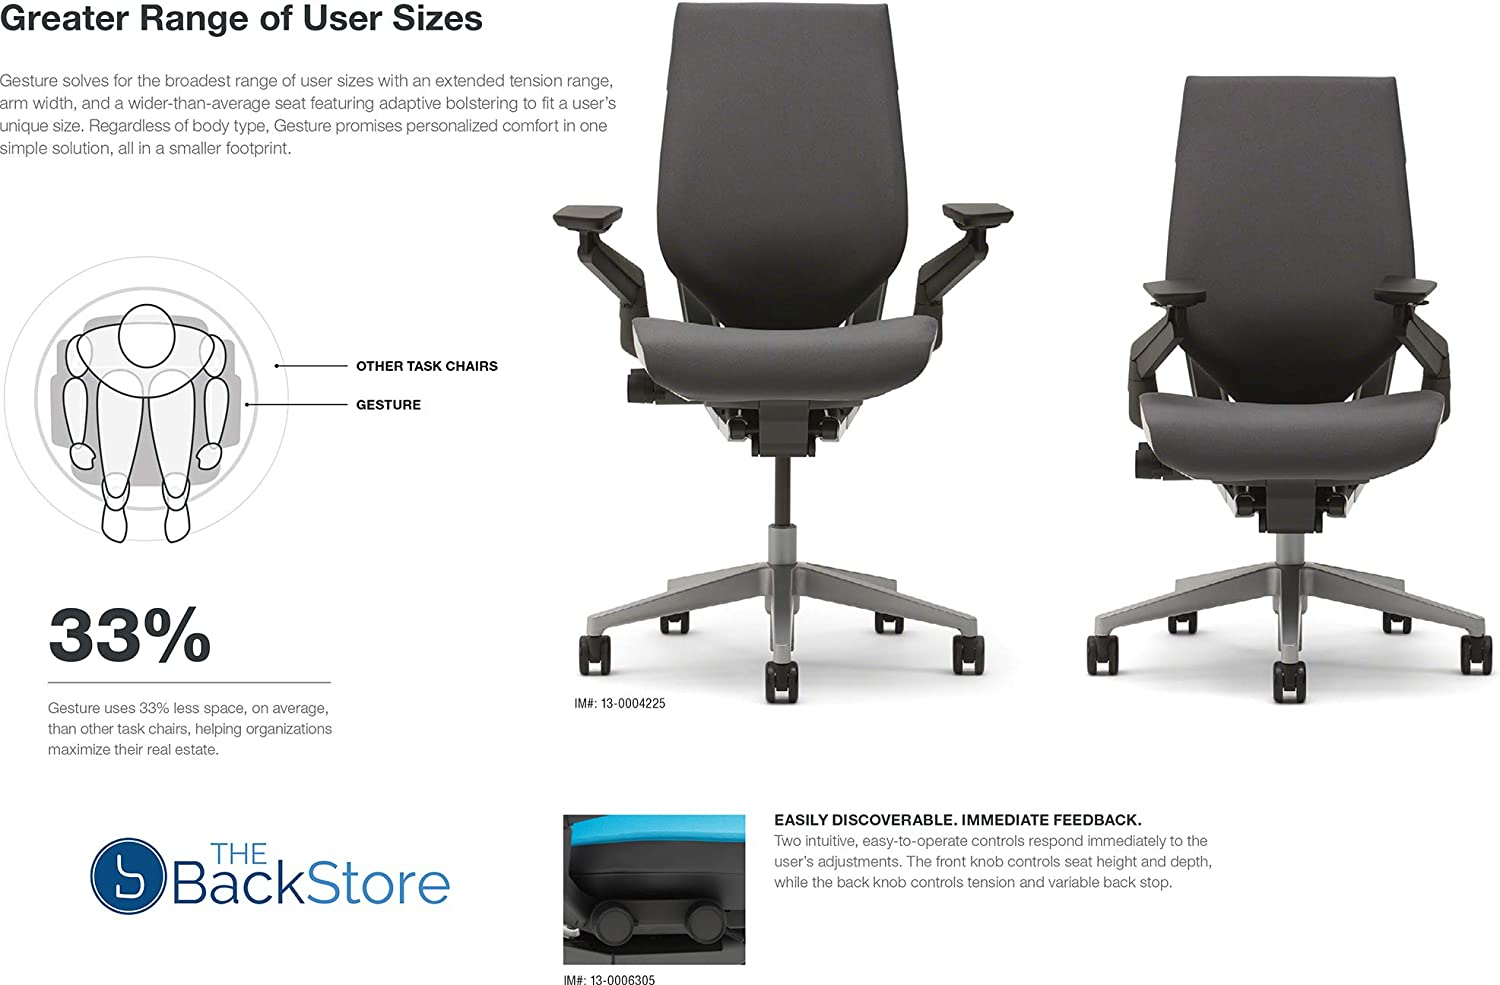 71zVU1tZhoL. AC SL1500 - What is The Best Computer Chair For Long Hours Sitting? [Comfortable and Ergonomic] - ChairPicks